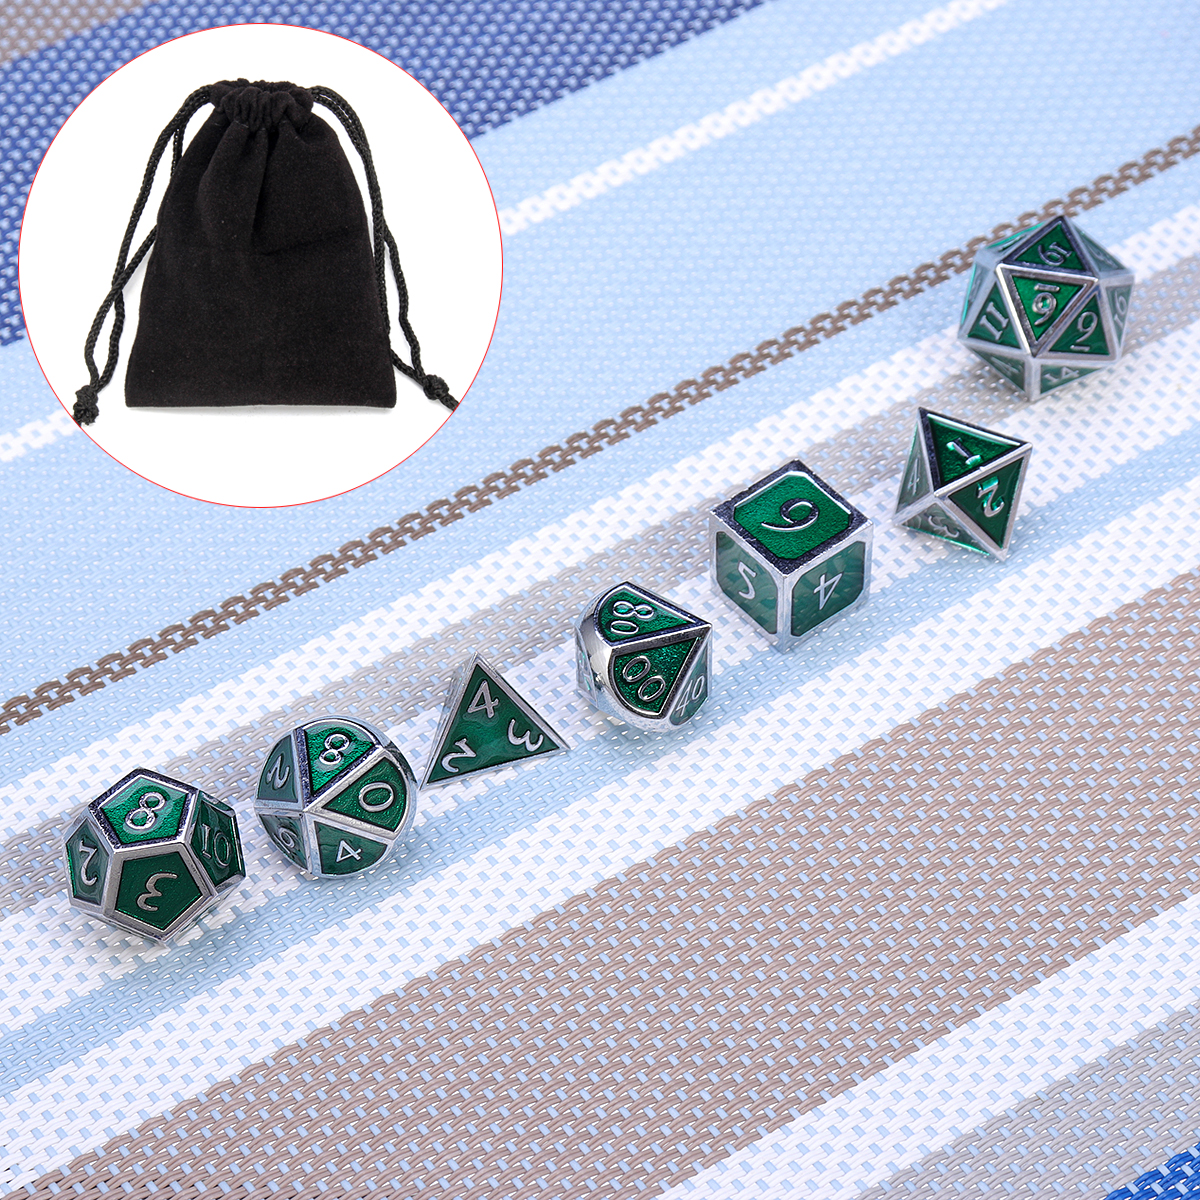 Zinc Alloy Metal Polyhedral Dice Silver Border Green Enamel Body Role Playing Game Dice Gadget RPG